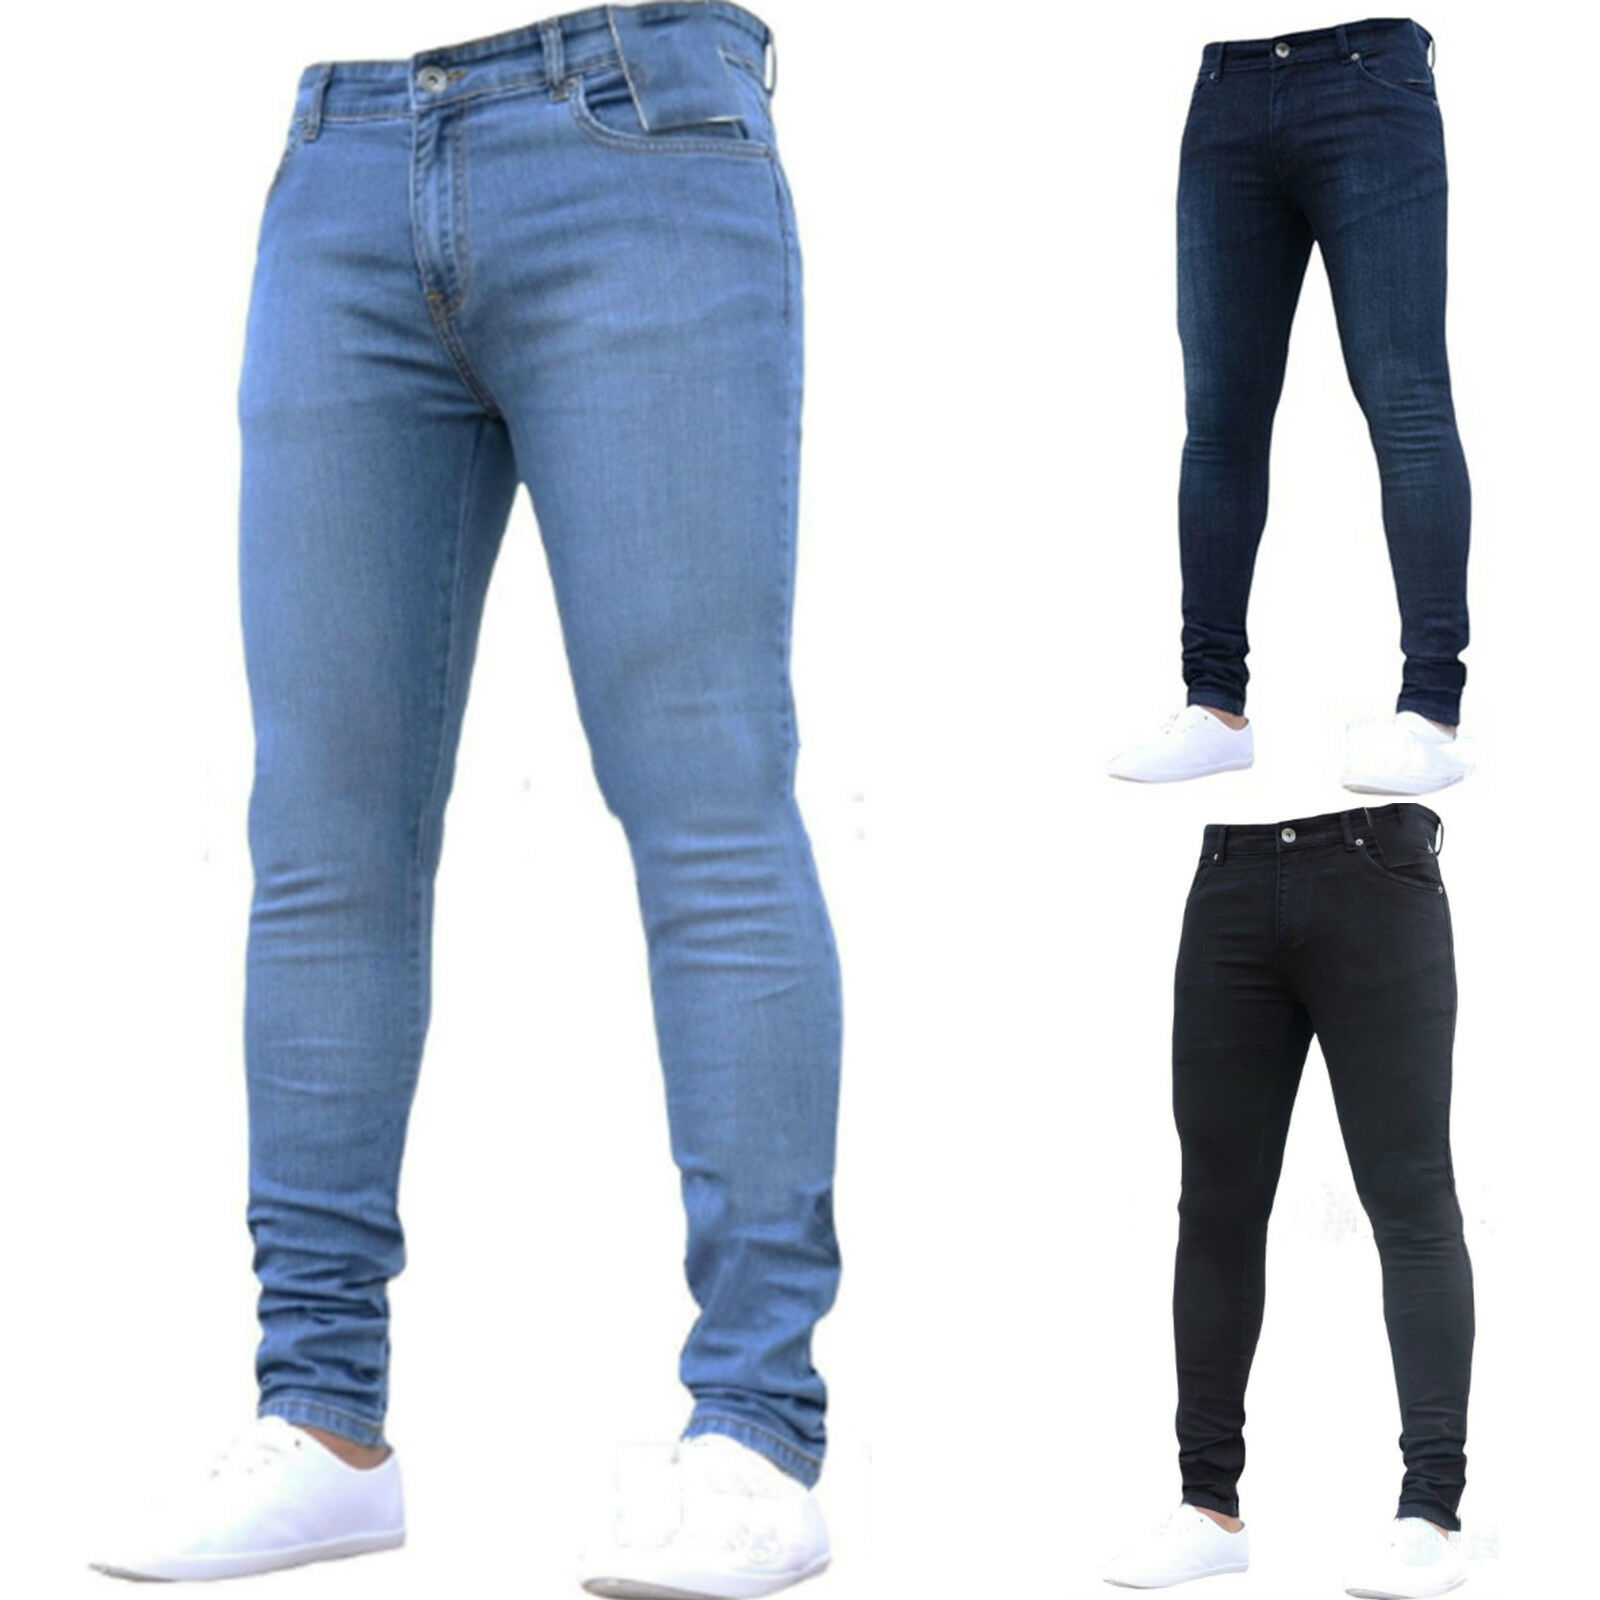 Mens Branded Firetrap Classic Pocket Ripped Detail Skinny Jeans Size Waist 30-40